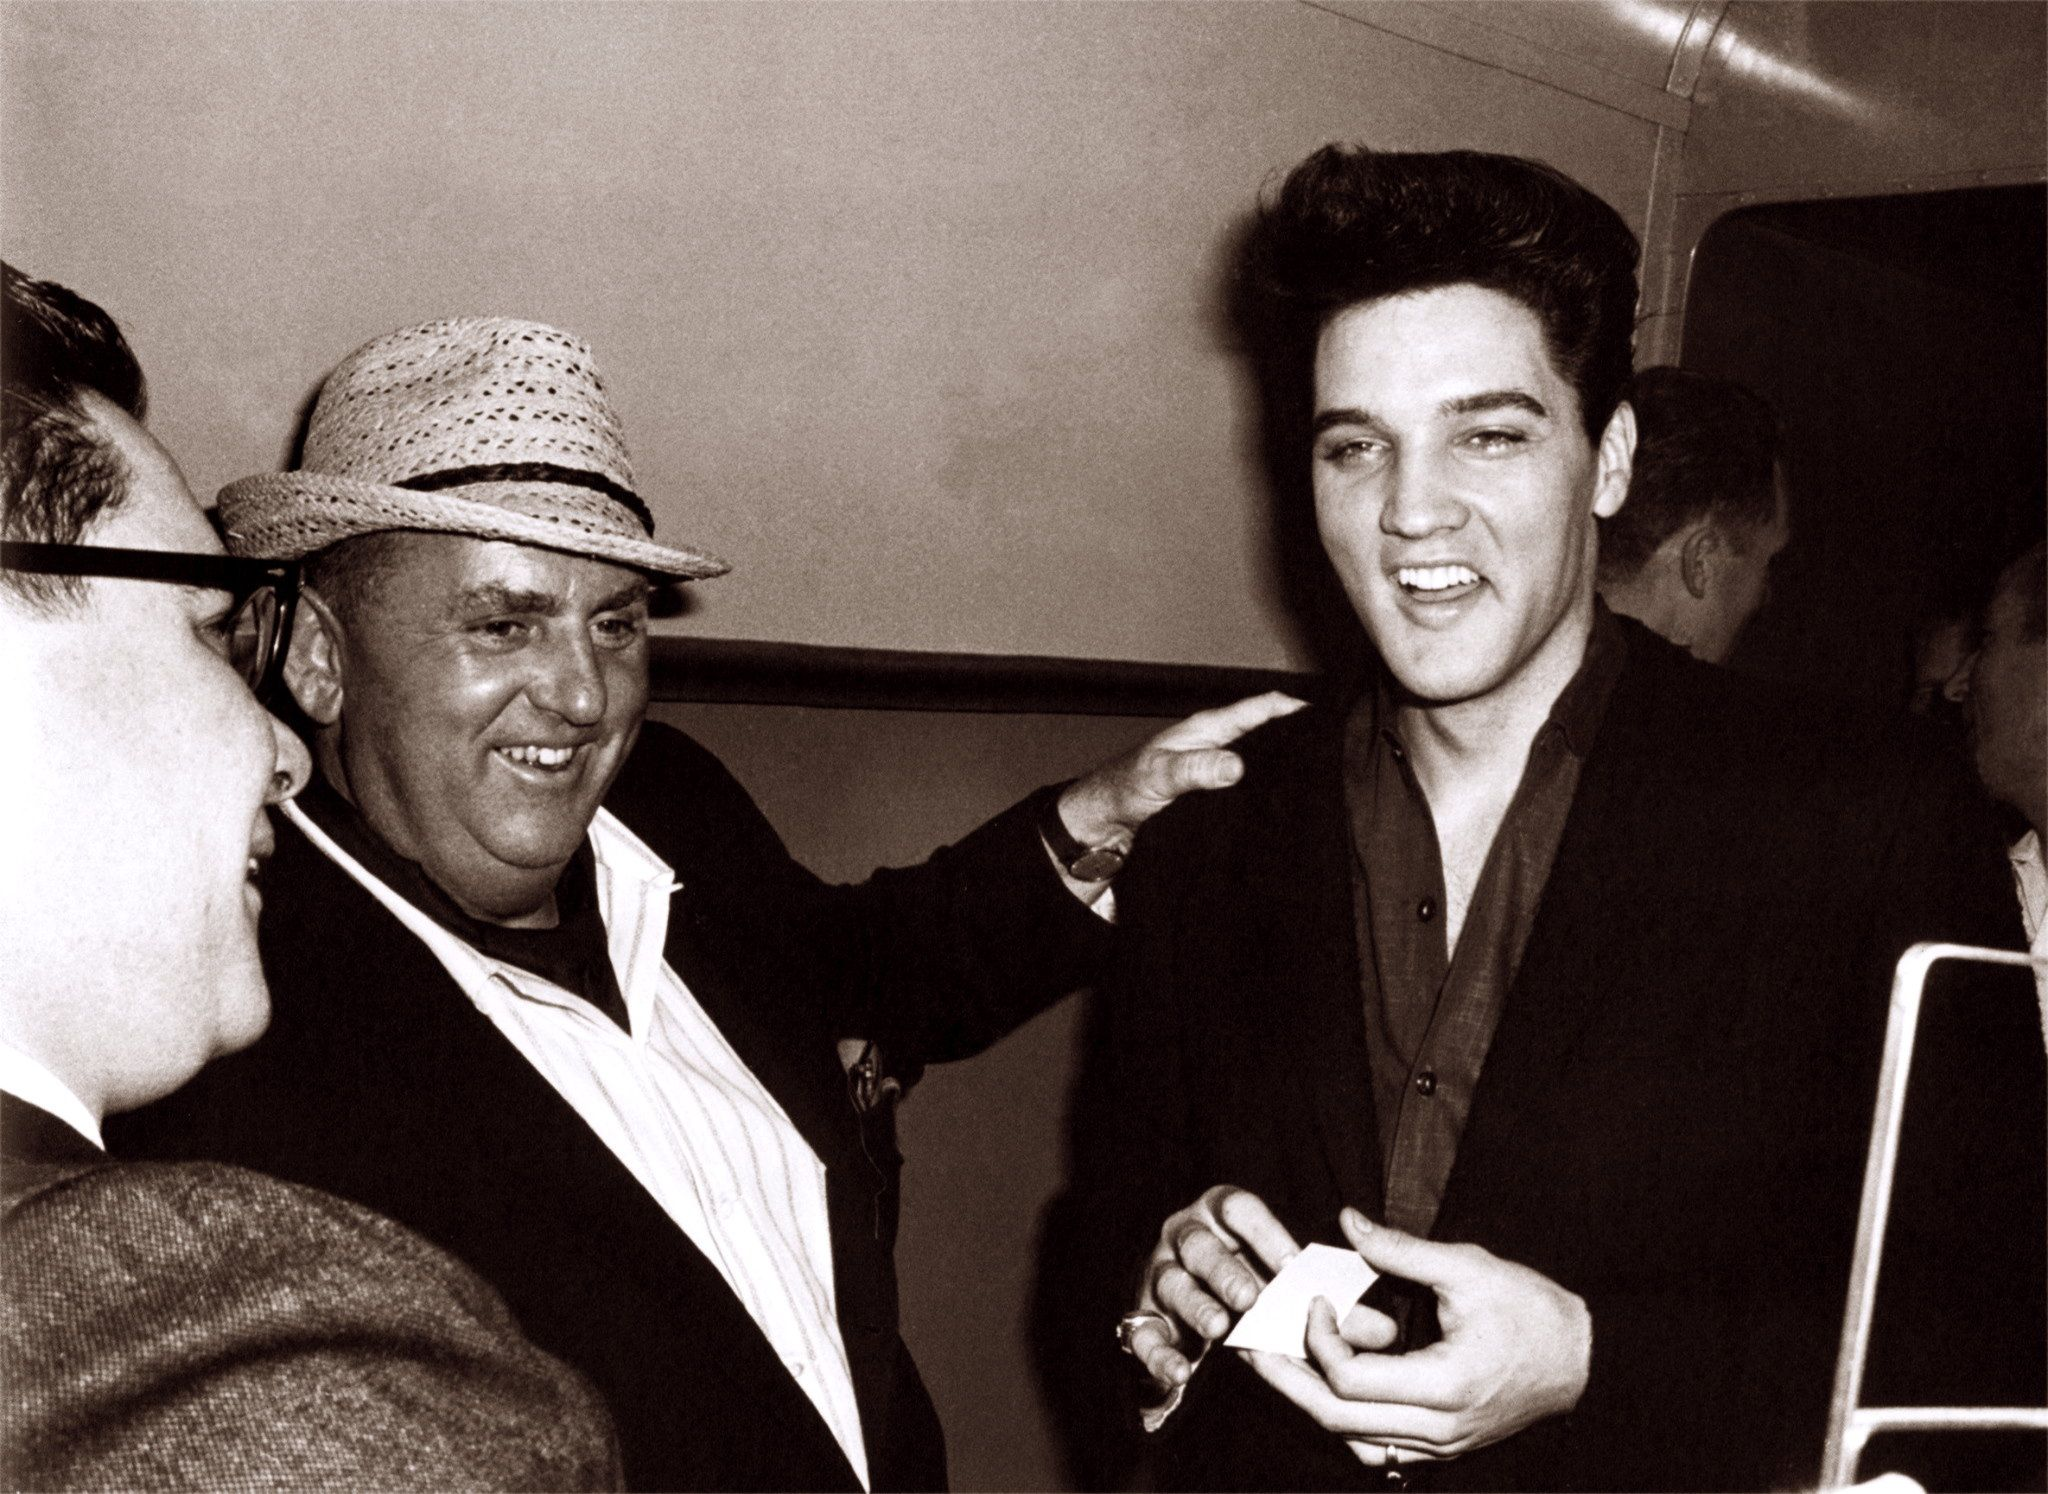 Elvis in Memphis in april 18 1960 with his manager, Colonel Parker.